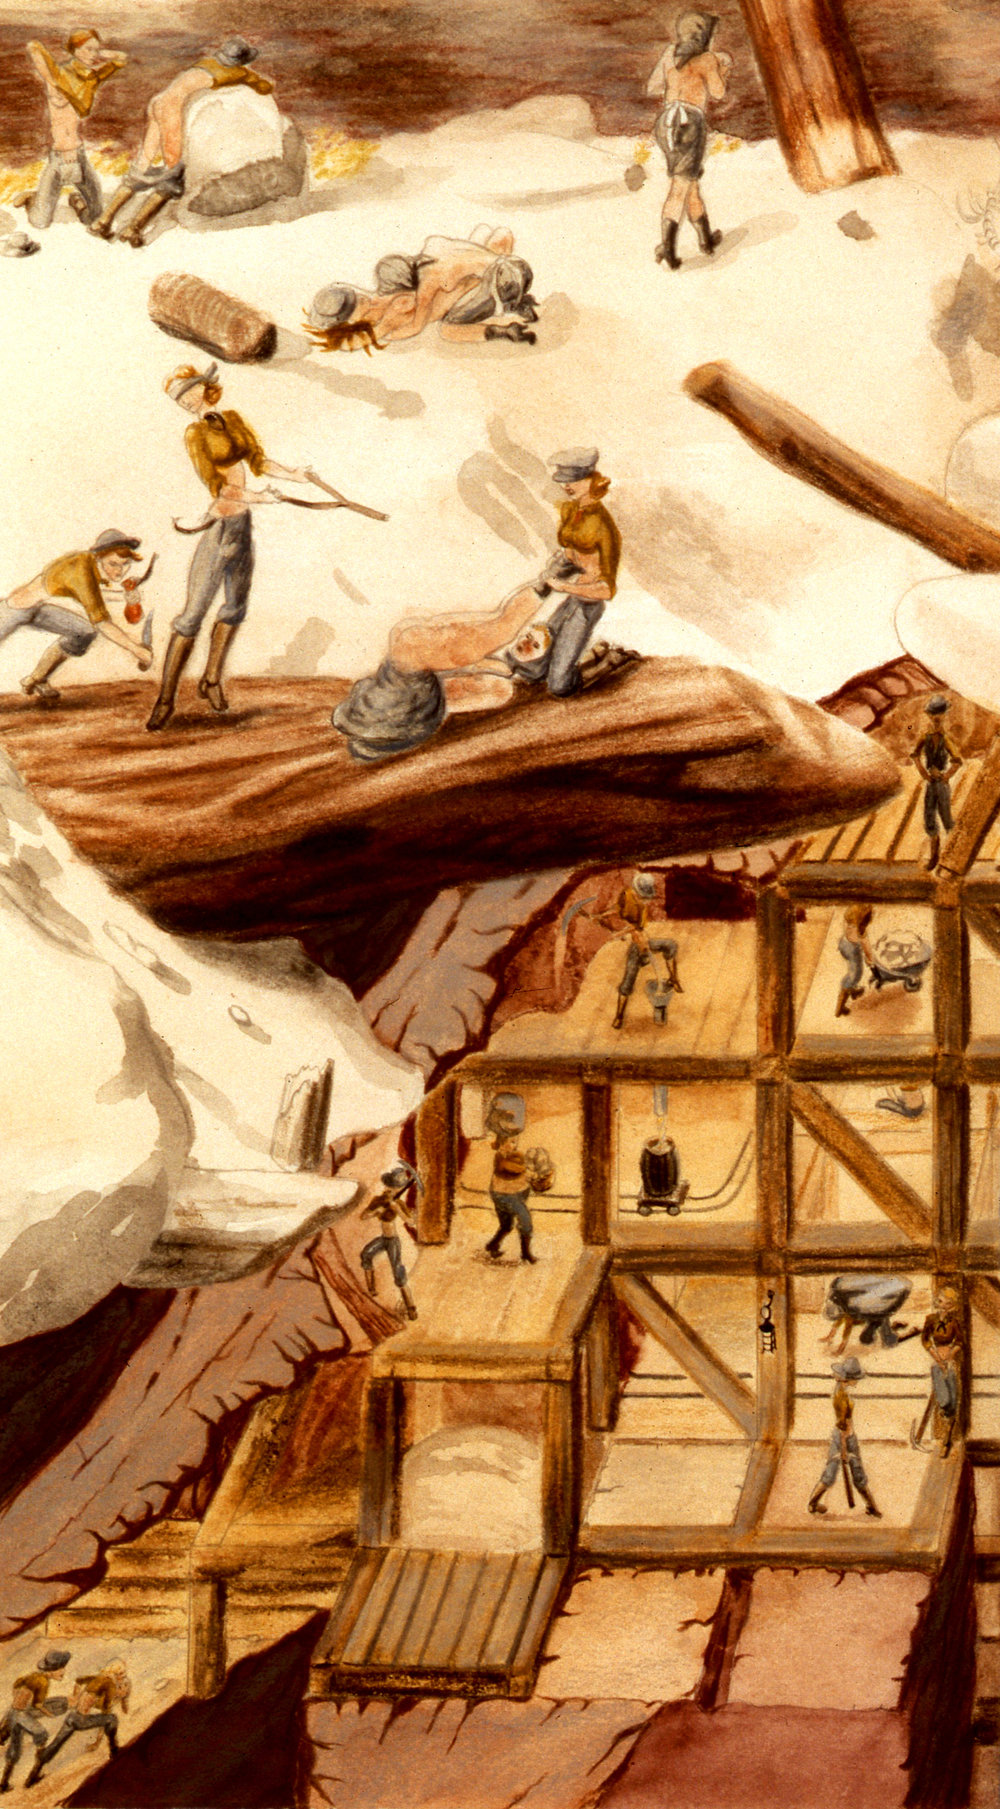 Golden Gorge drawing detail underground mines and divining for water.jpg